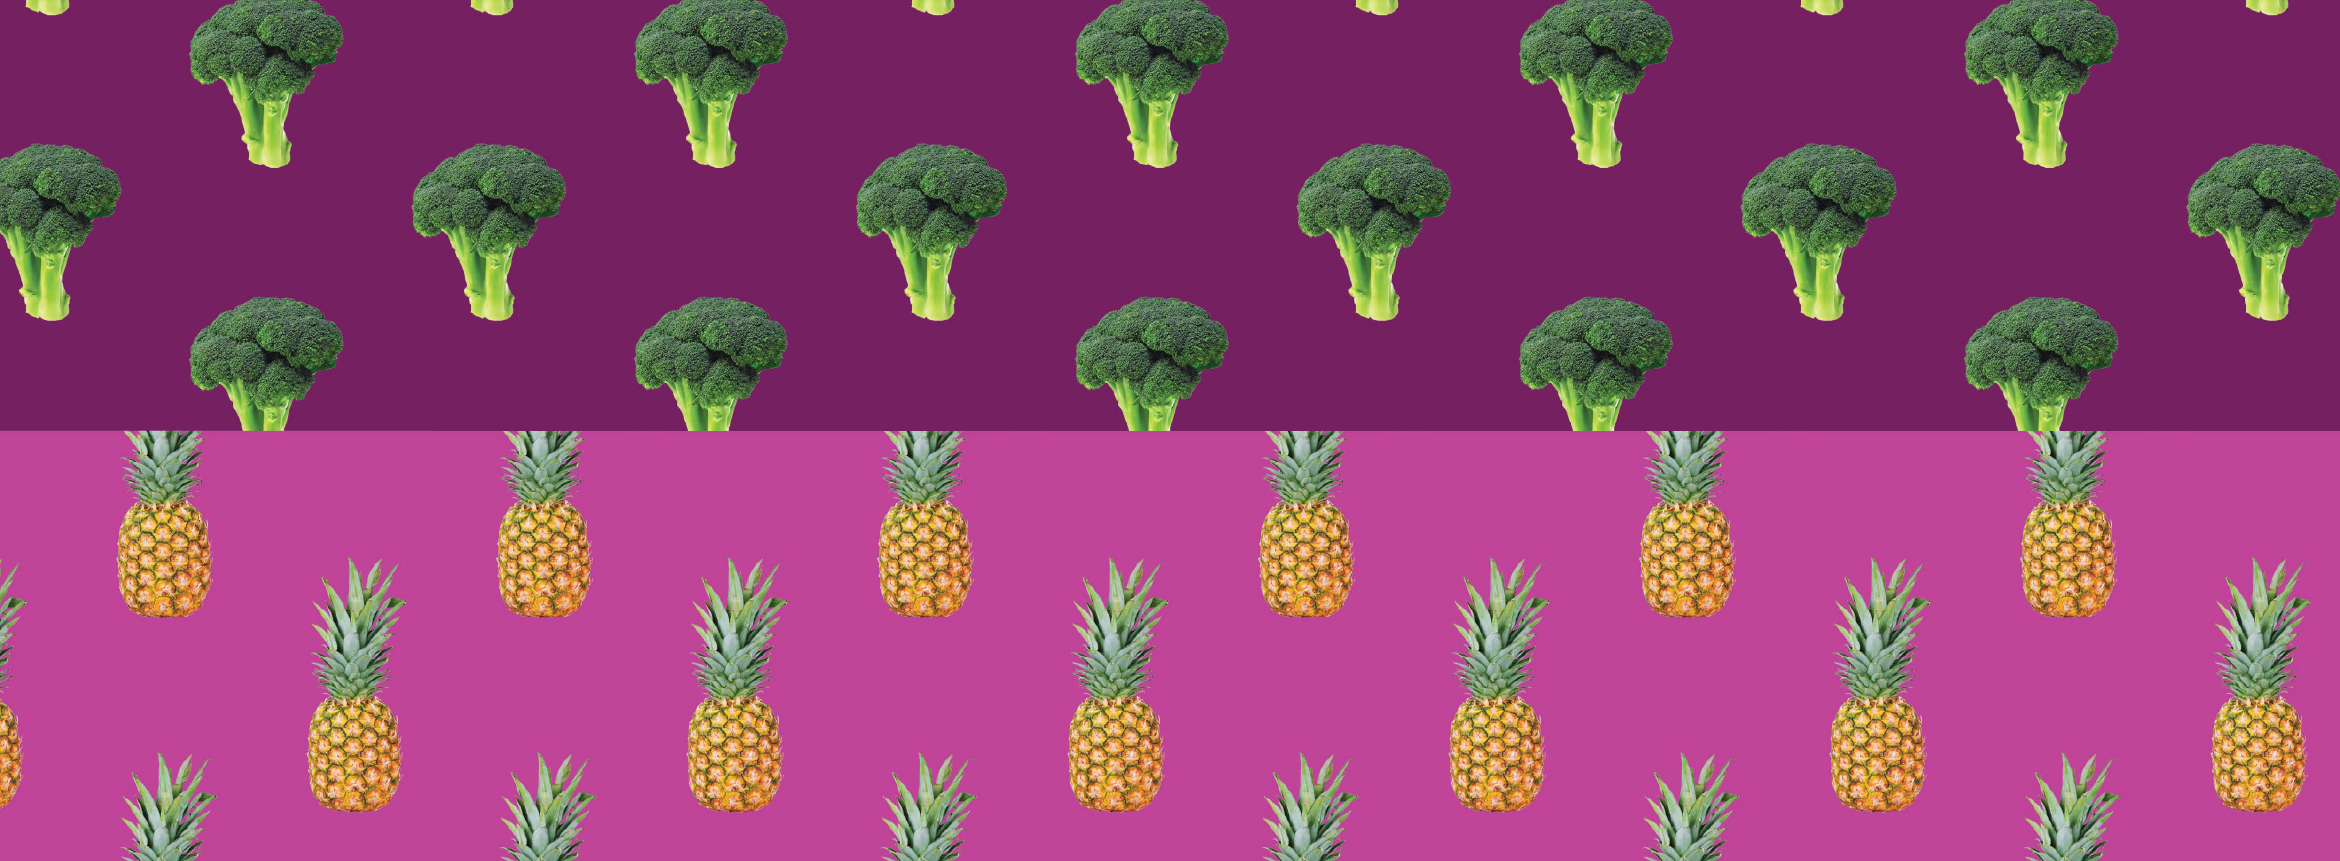 pattern with pineapples and broccoli